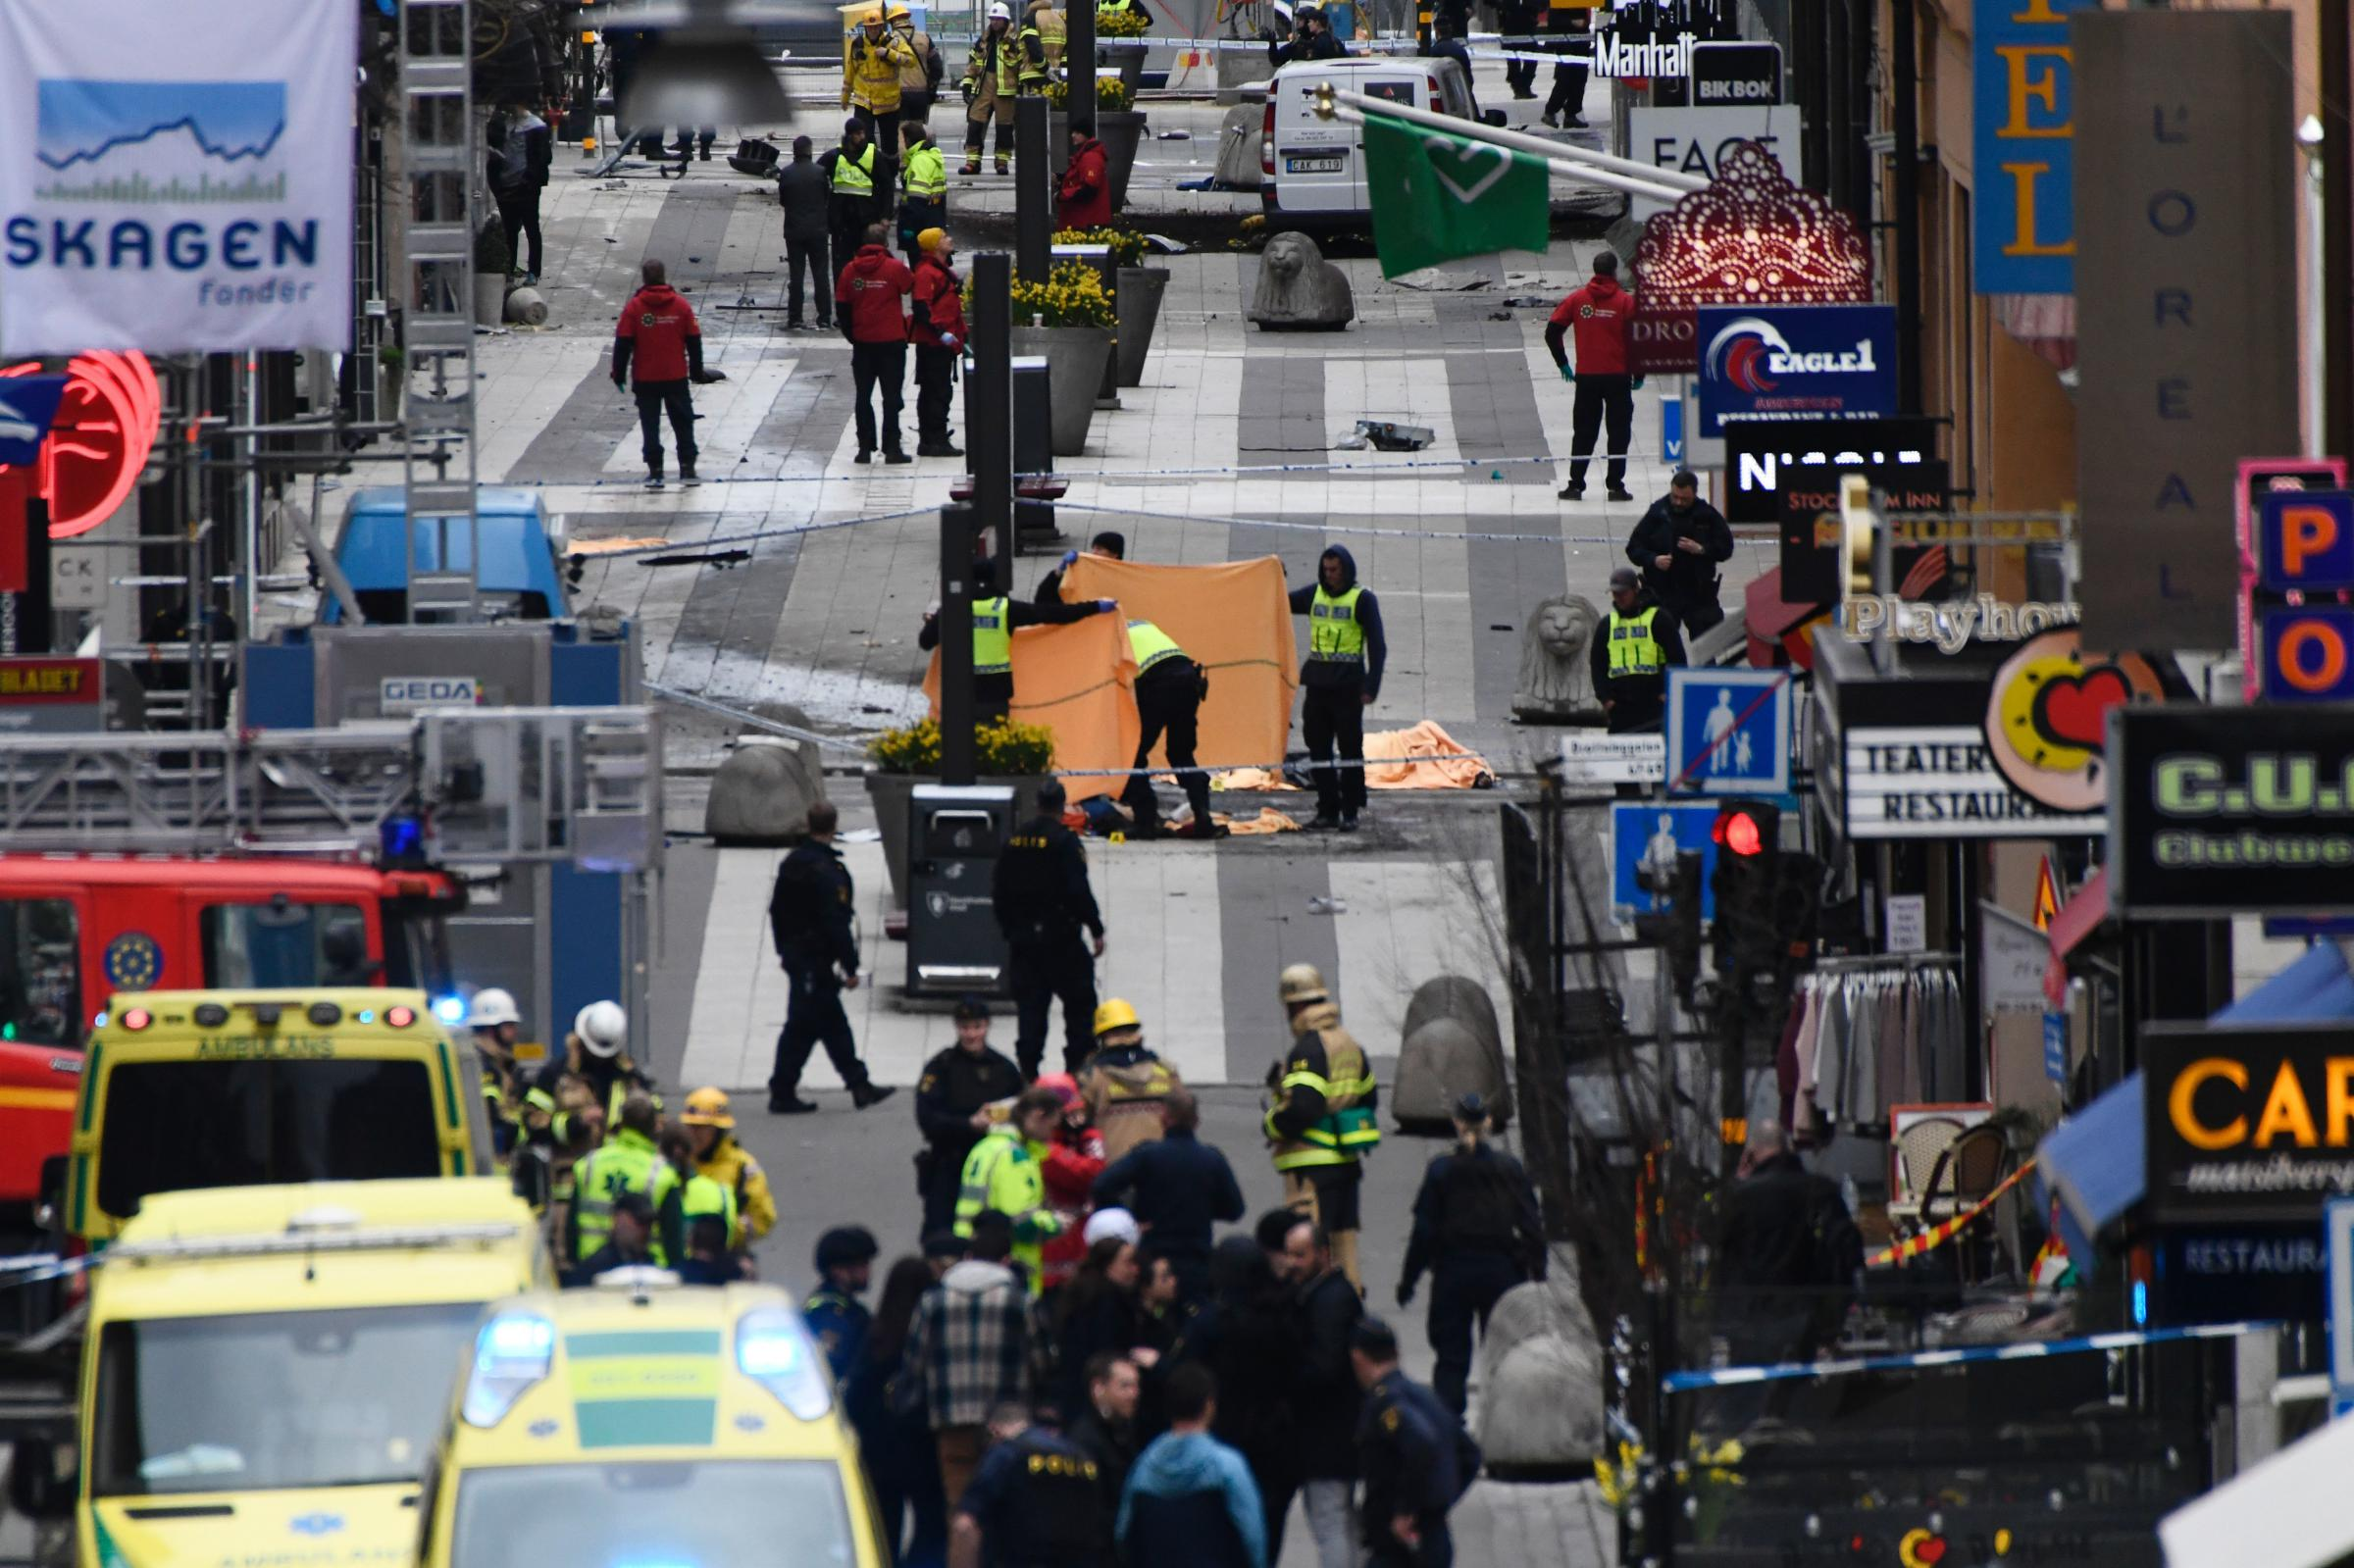 Crowds gather at truck attack site amid Sweden soul searching